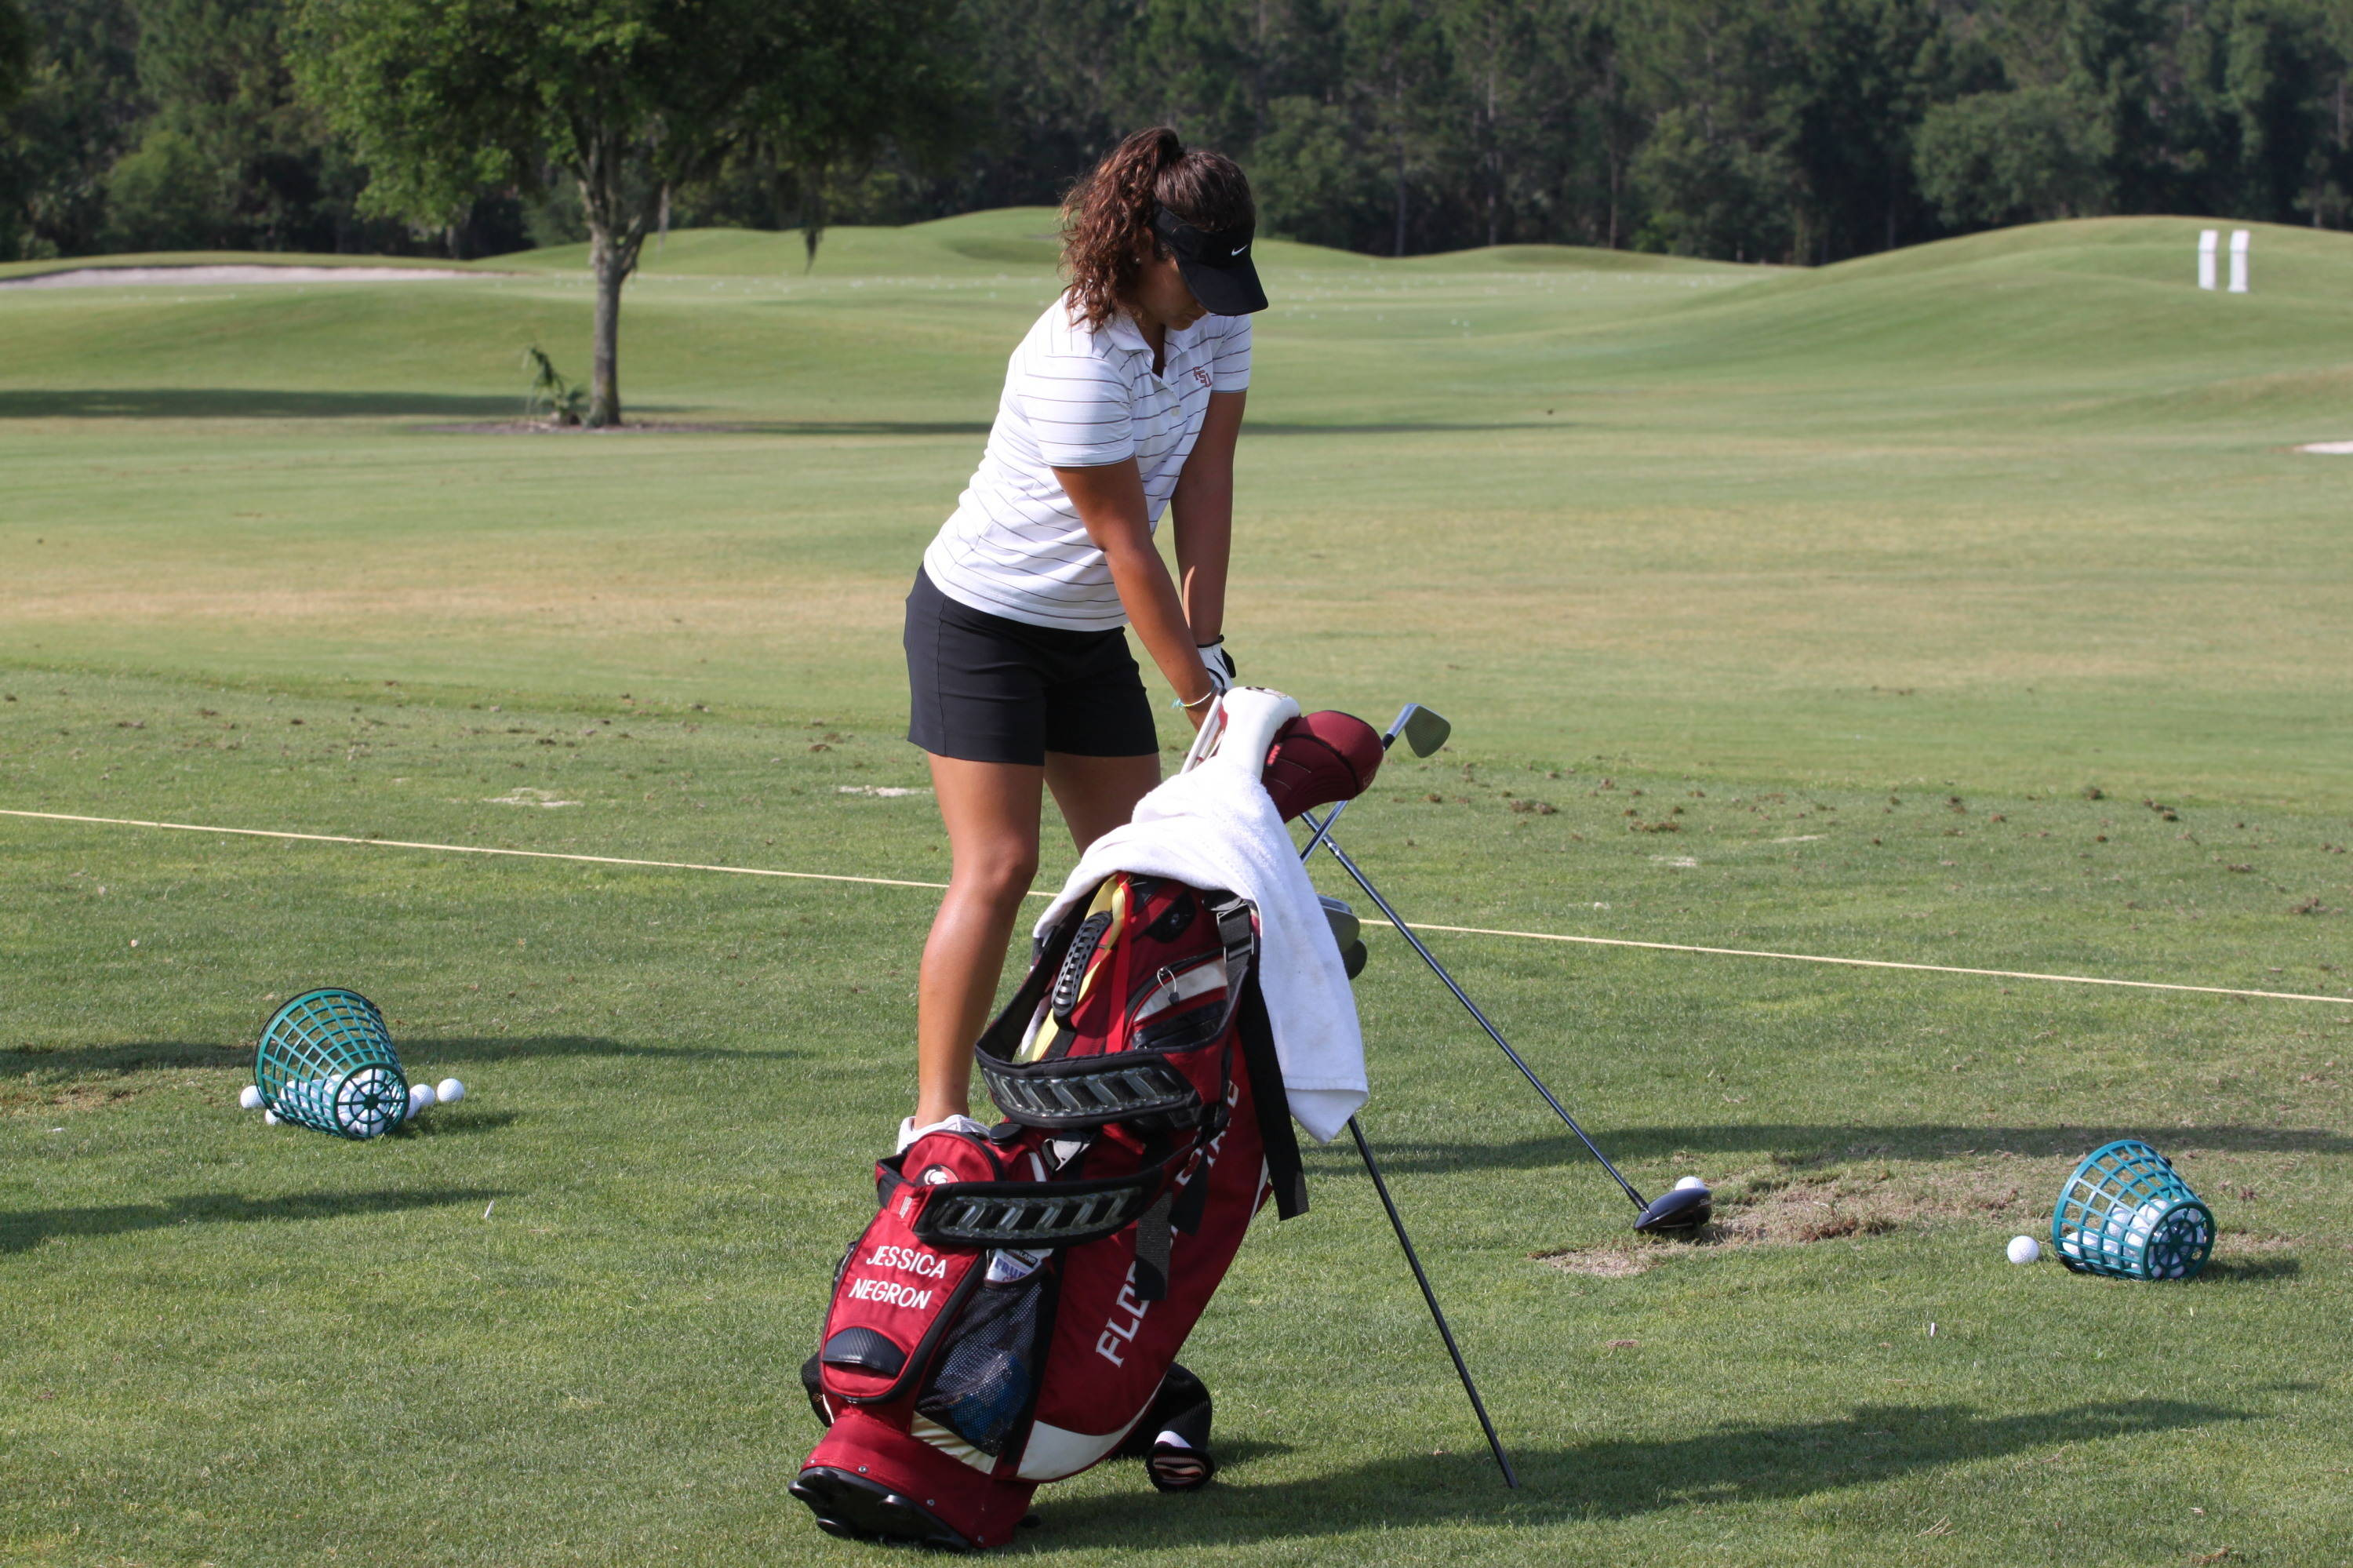 2011 NCAA Women's Golf - Sophomore Jessica Negron is playing in her second career NCAA regional championship.